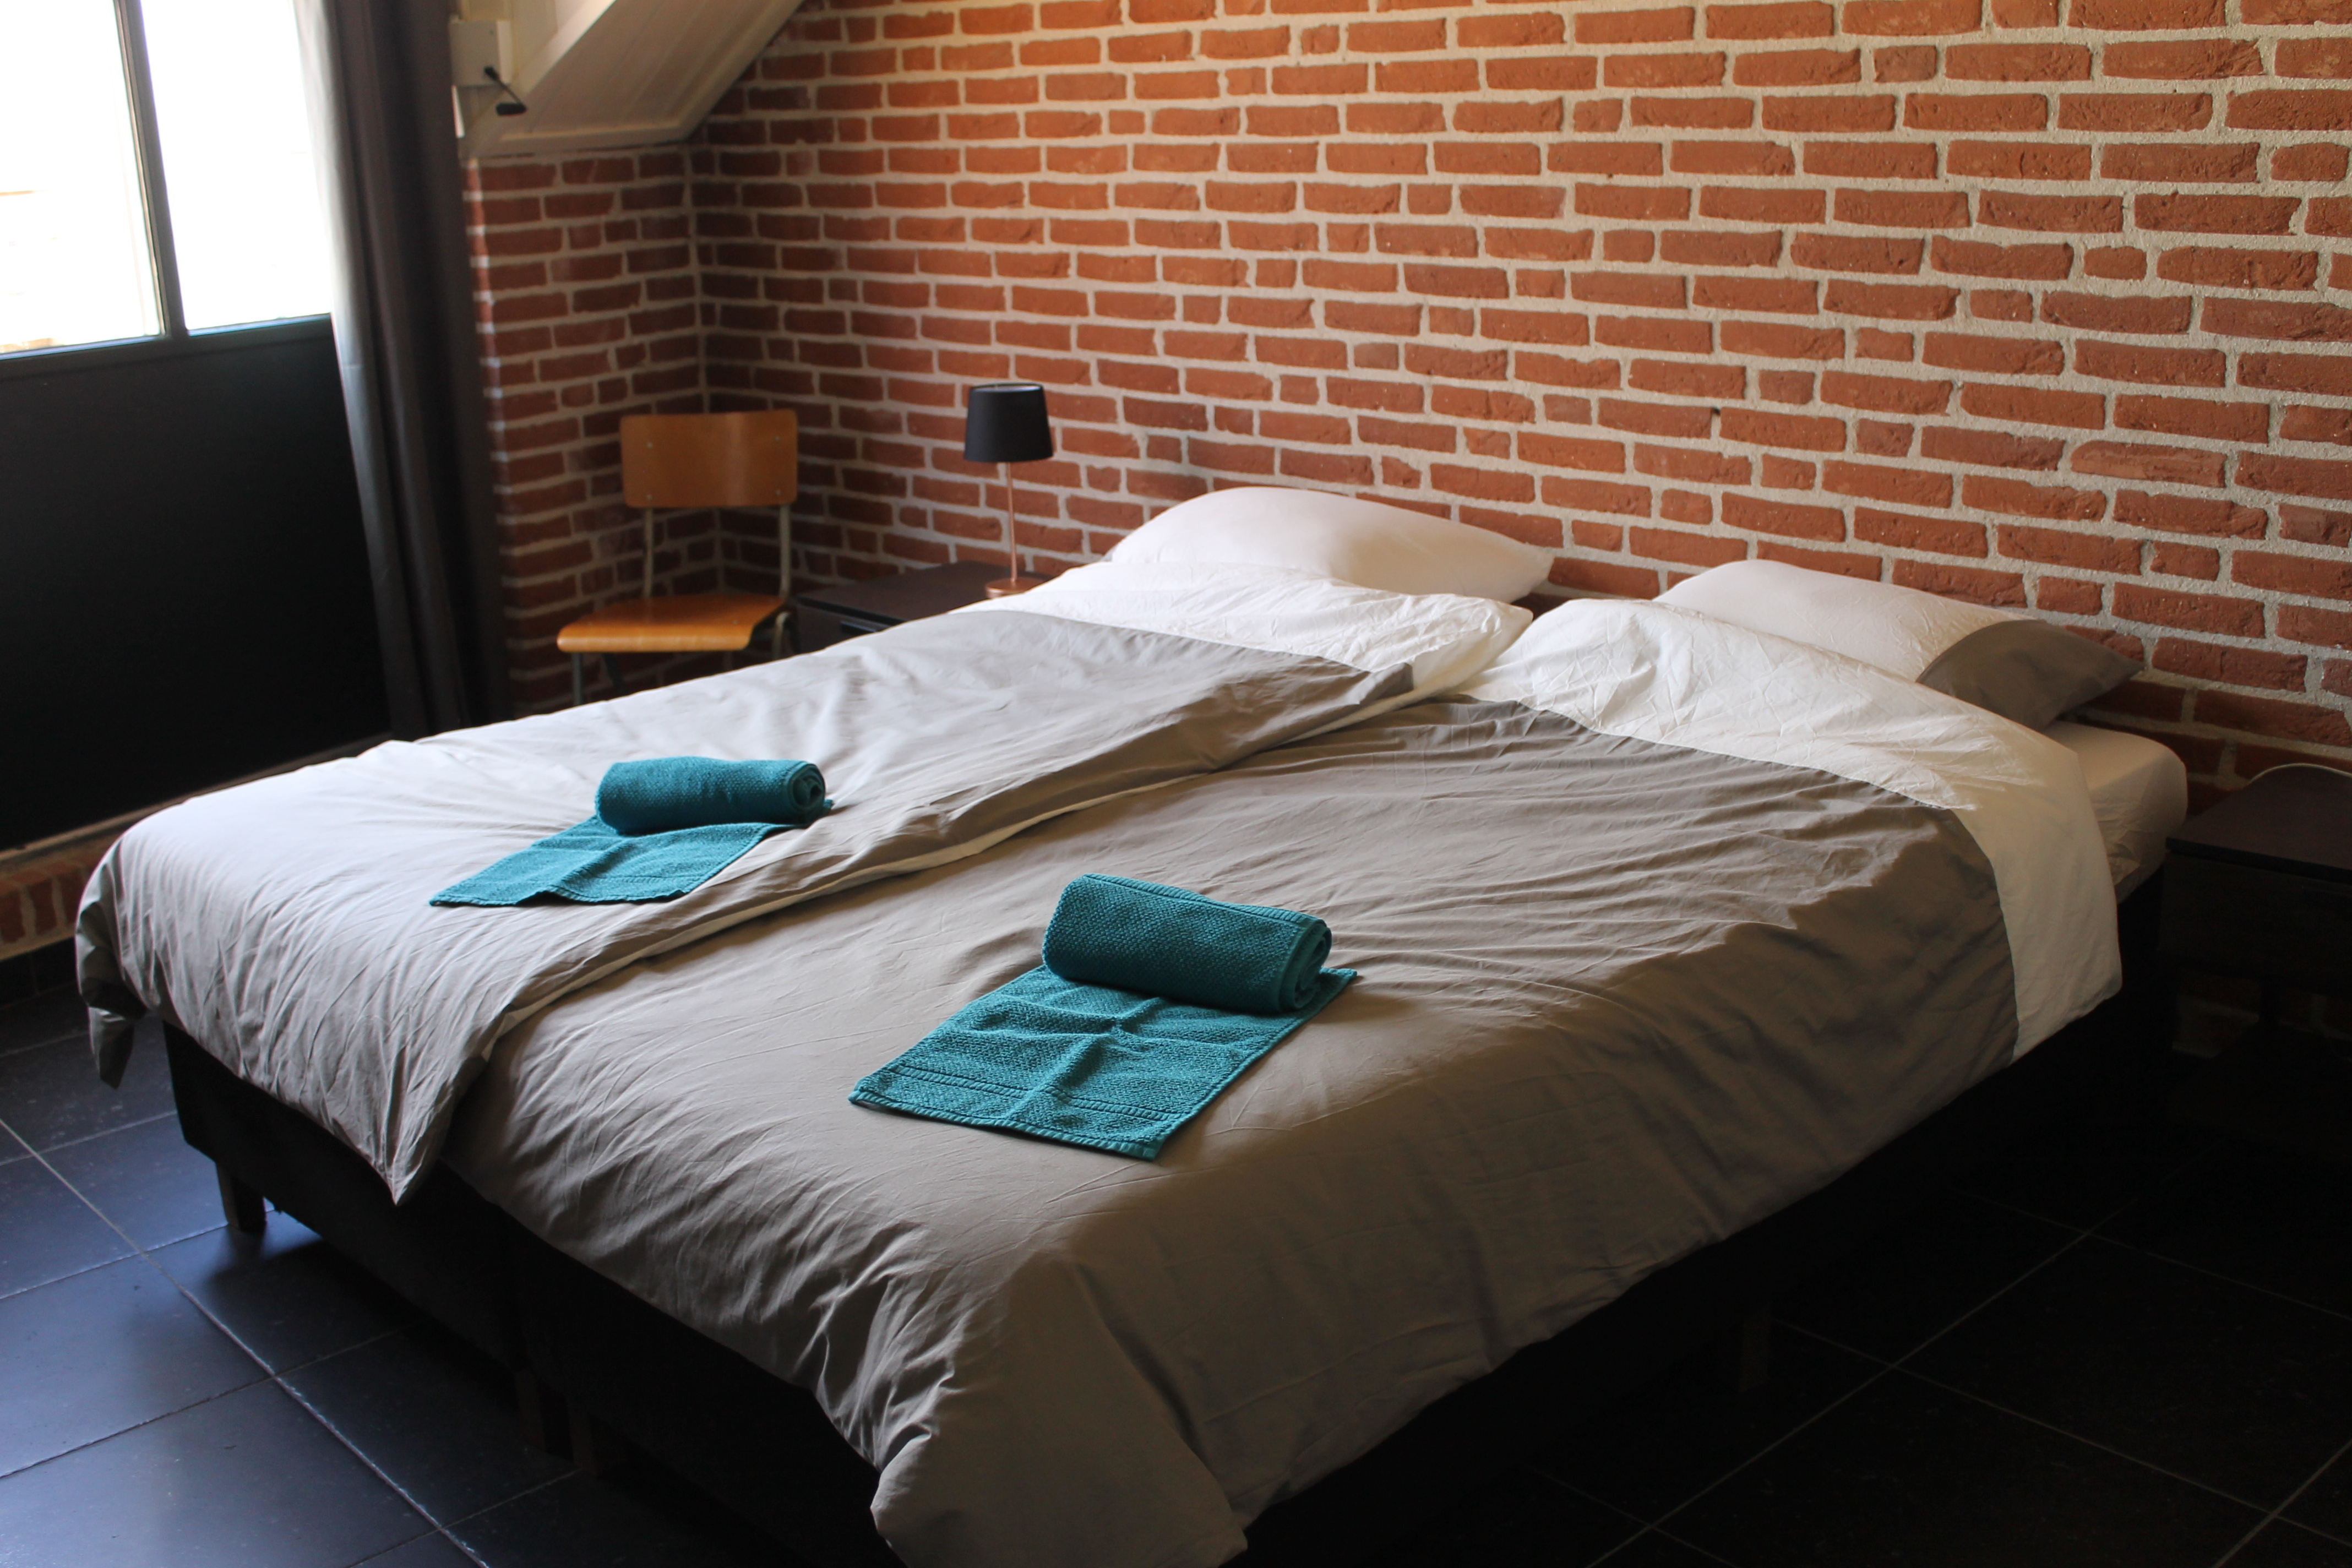 Brownies_downieS_Baarle_Logies_Bed_and_Breakfast_3_3